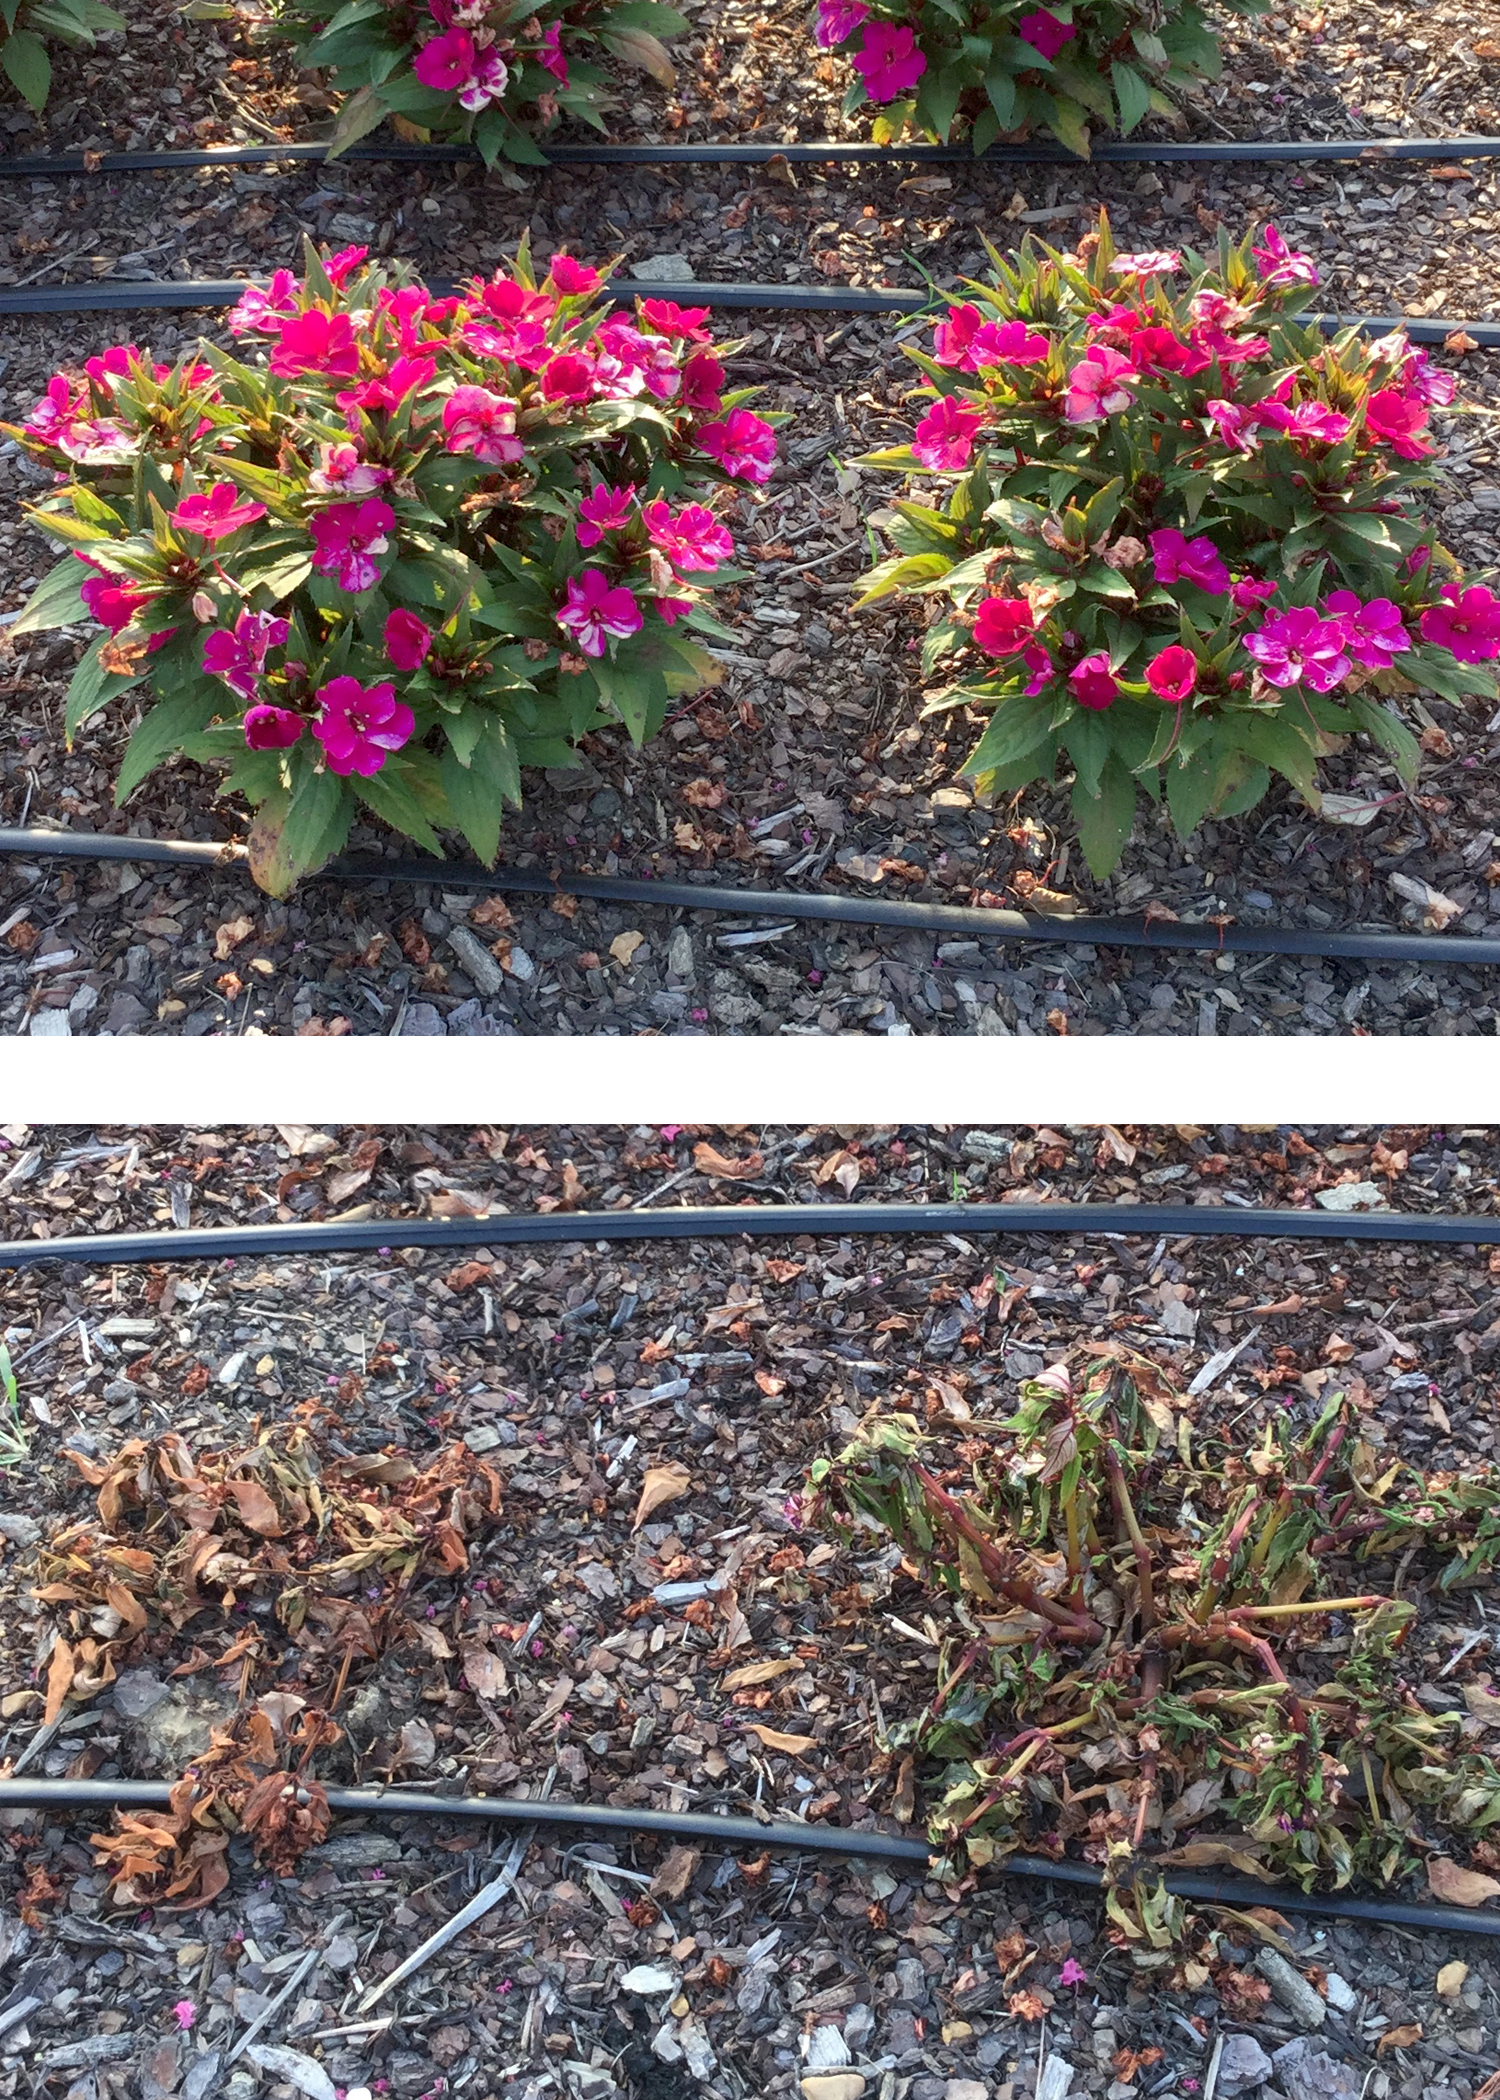 On July 24, 2015, these SunPatiens, top, were thriving at the Mississippi State University Truck Crops Branch Experiment Station in Crystal Springs, Mississippi. They were dead when photographed, bottom, Aug. 7, 2015. The flowers were killed by the Macrophomina phaseolina pathogen, which had never before been seen in impatiens (Photo by MSU Extension Service/Clay Cheroni)